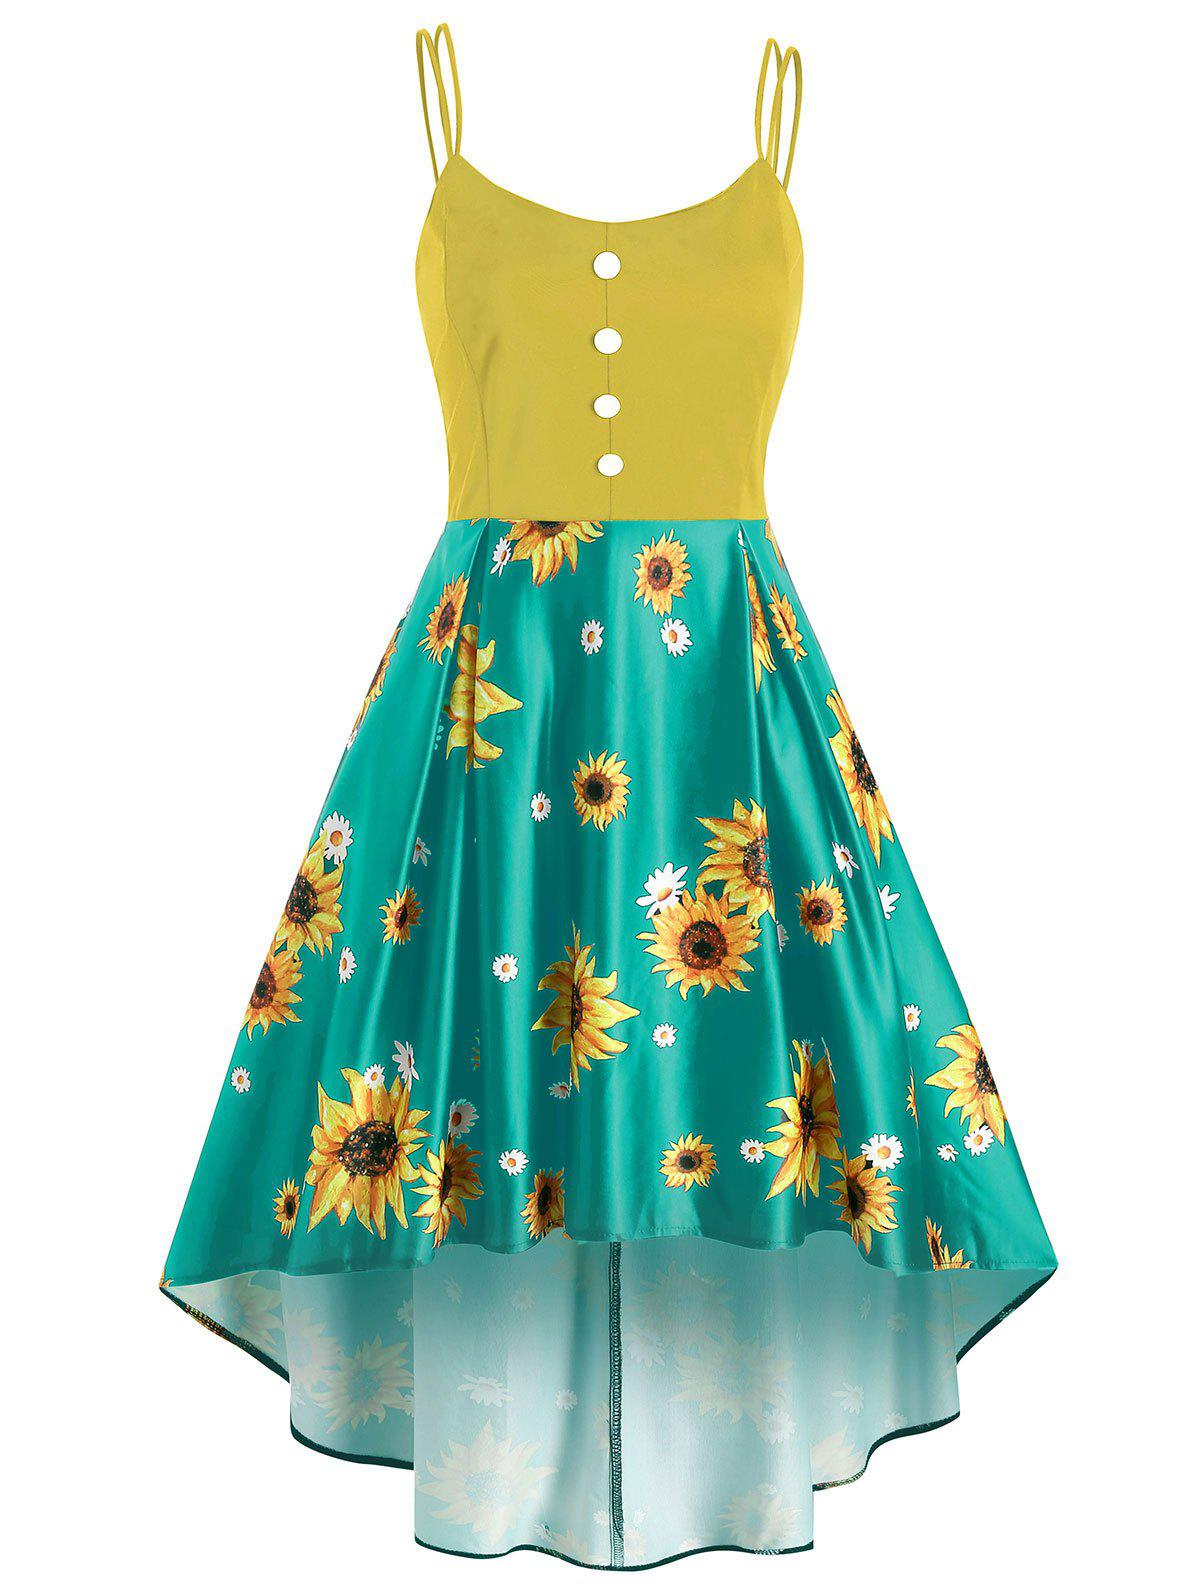 Mock Button Sunflower Print High Low Dress - YELLOW 2XL